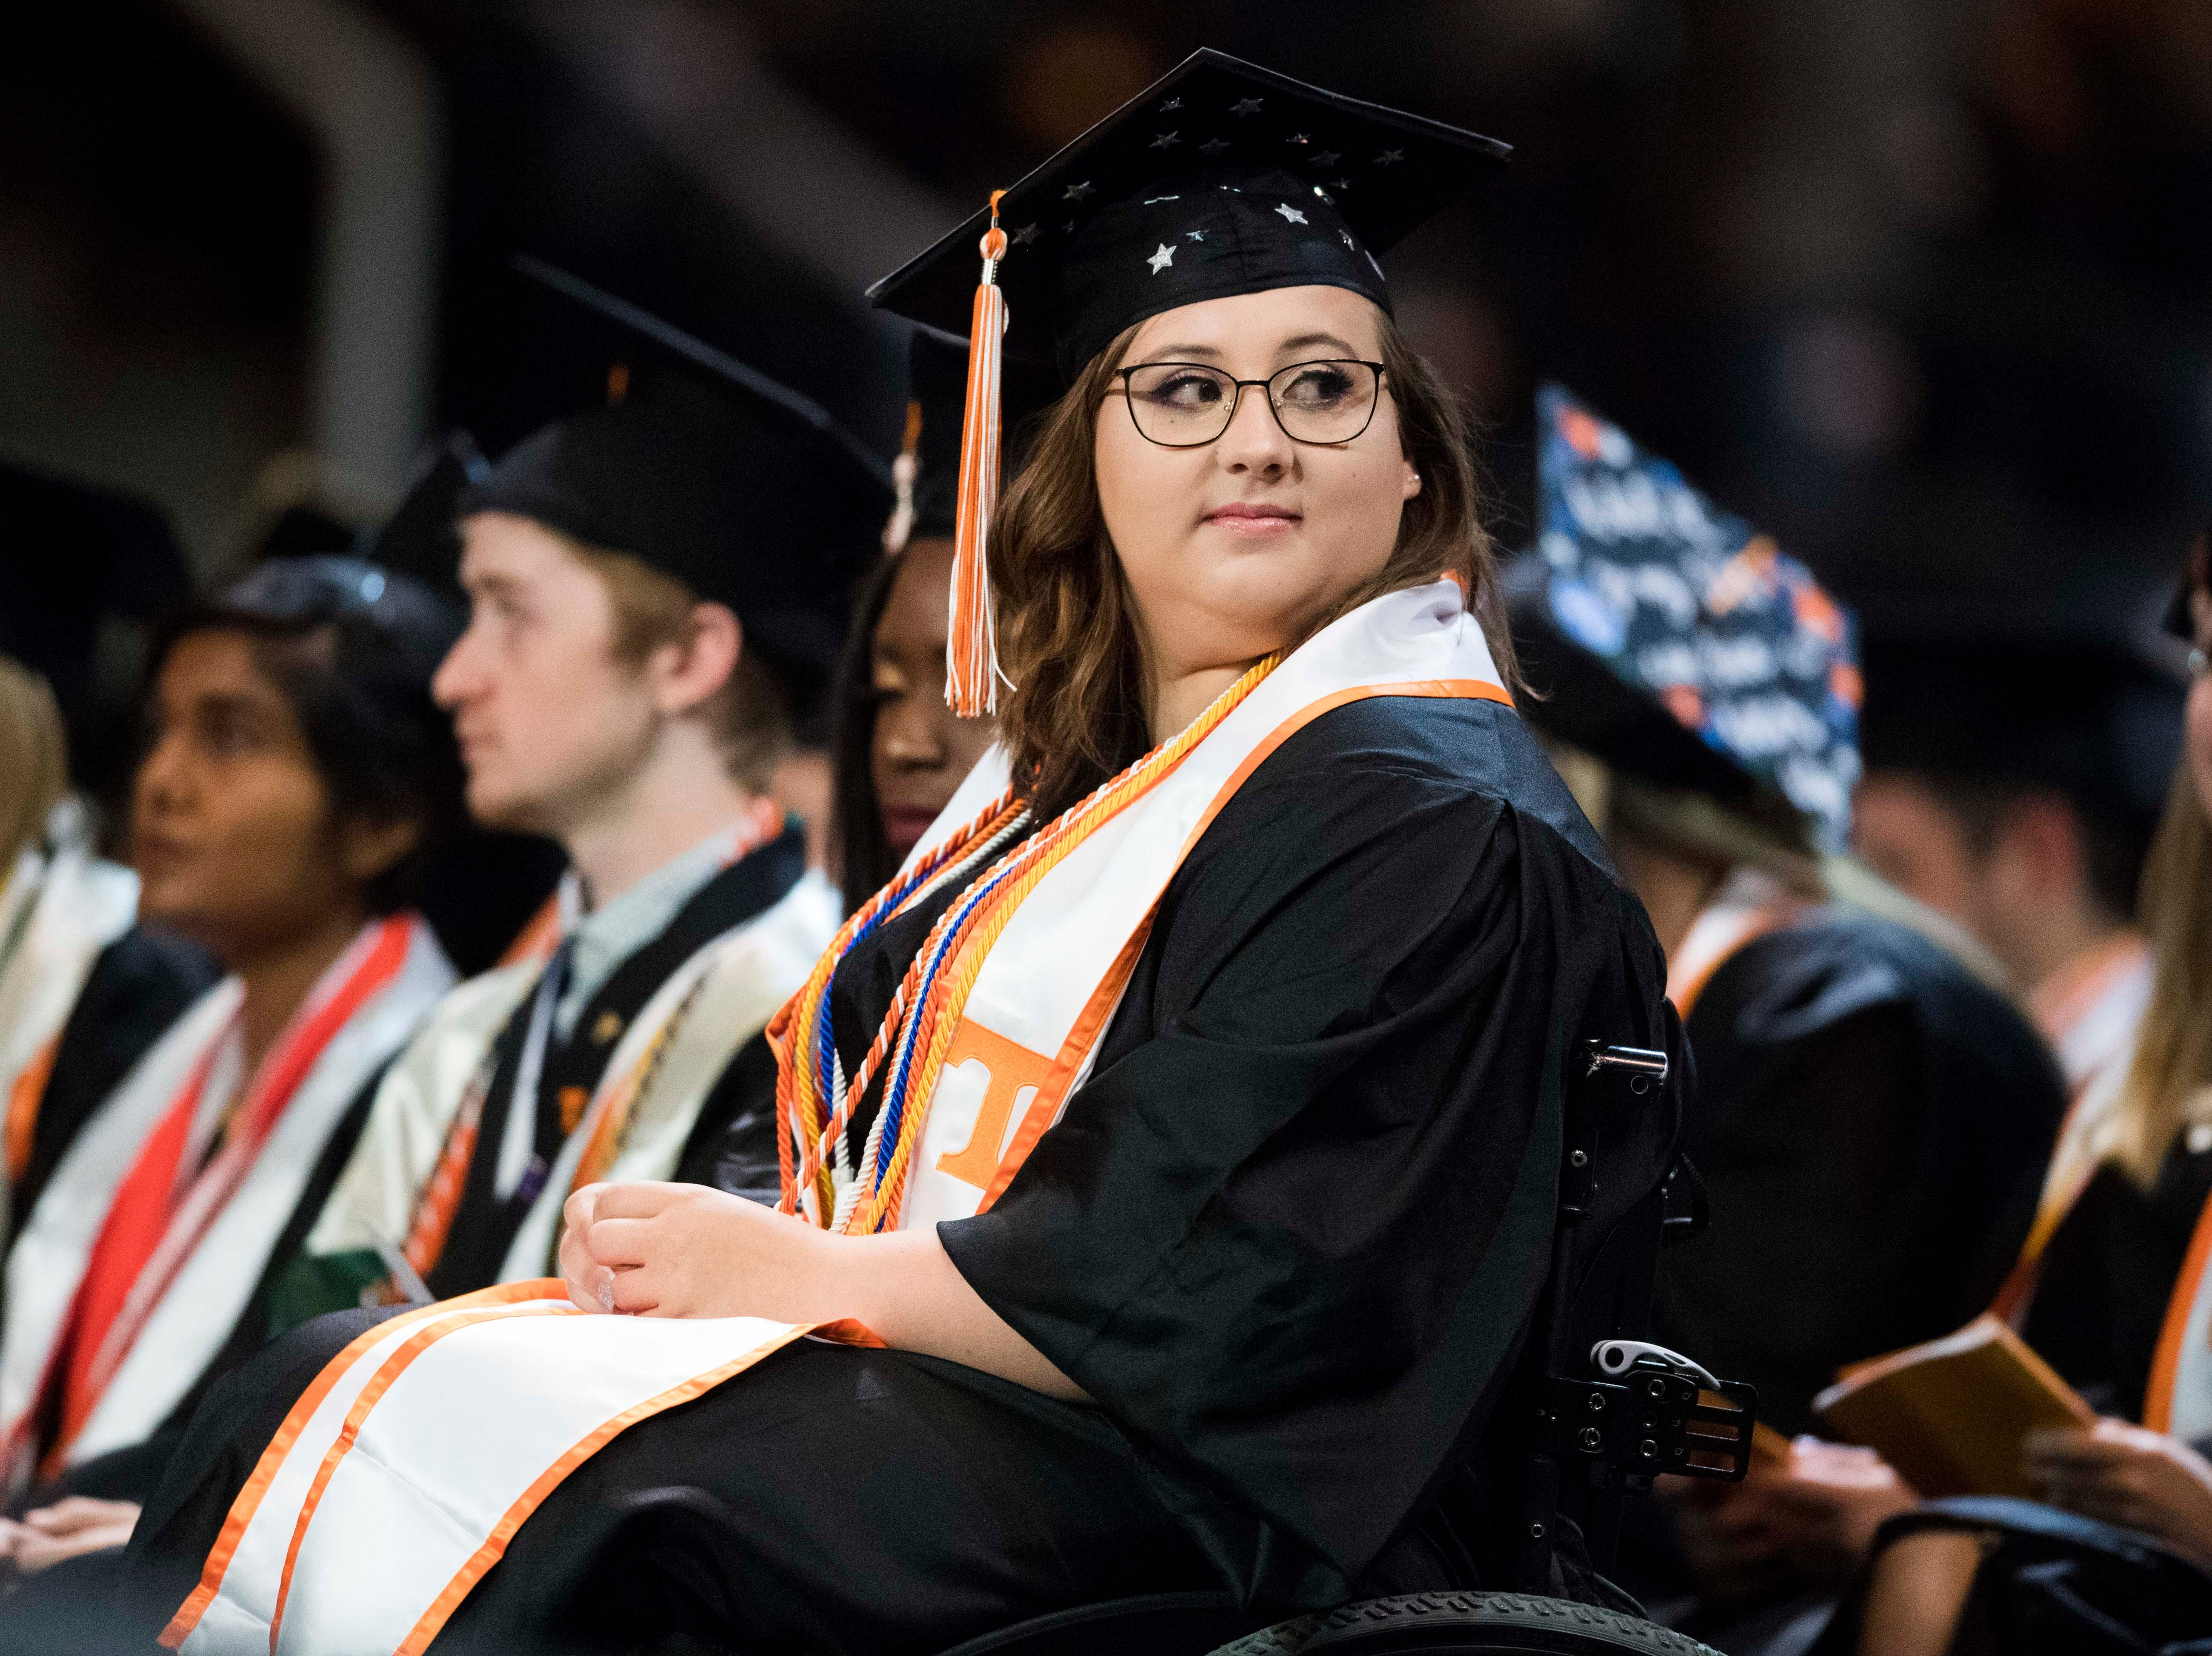 A student listens during University of Tennessee's College of Arts and Sciences commencement in Thompson-Boling arena in Knoxville, Saturday, May 11, 2019.